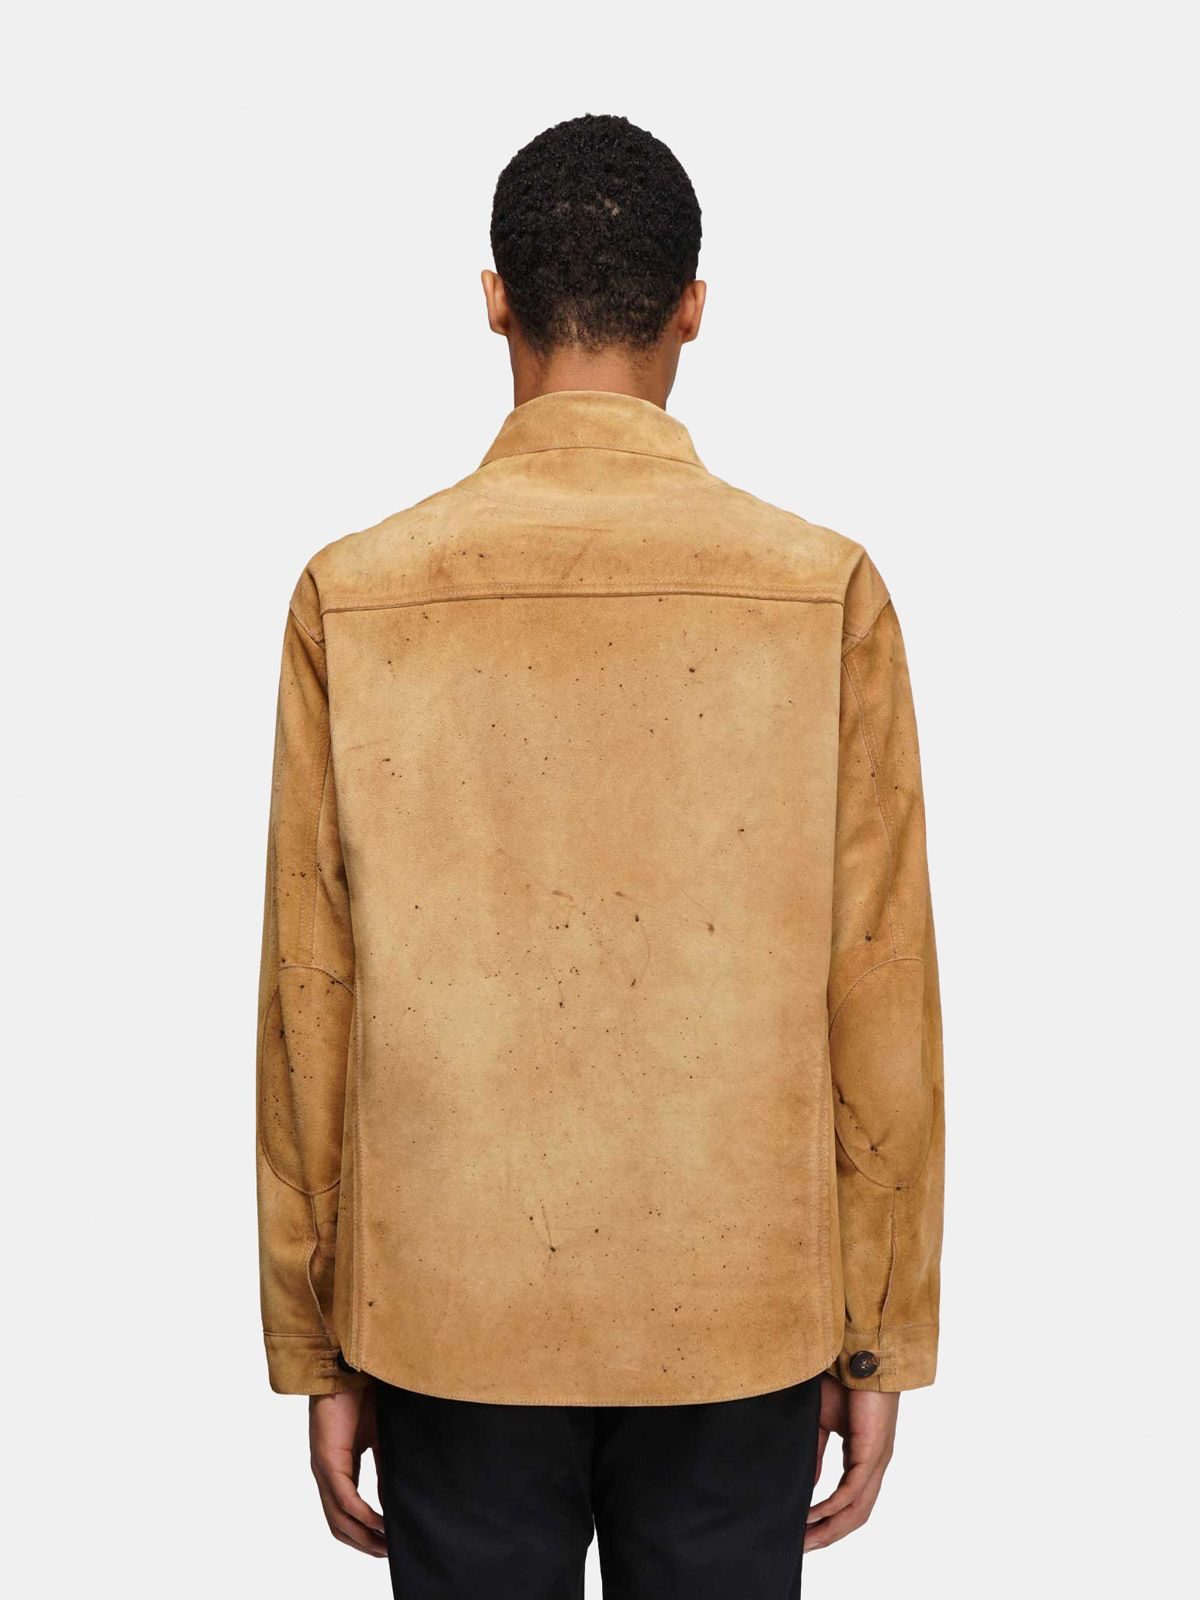 Golden Goose - Sawyer shirt in bone brown leather in